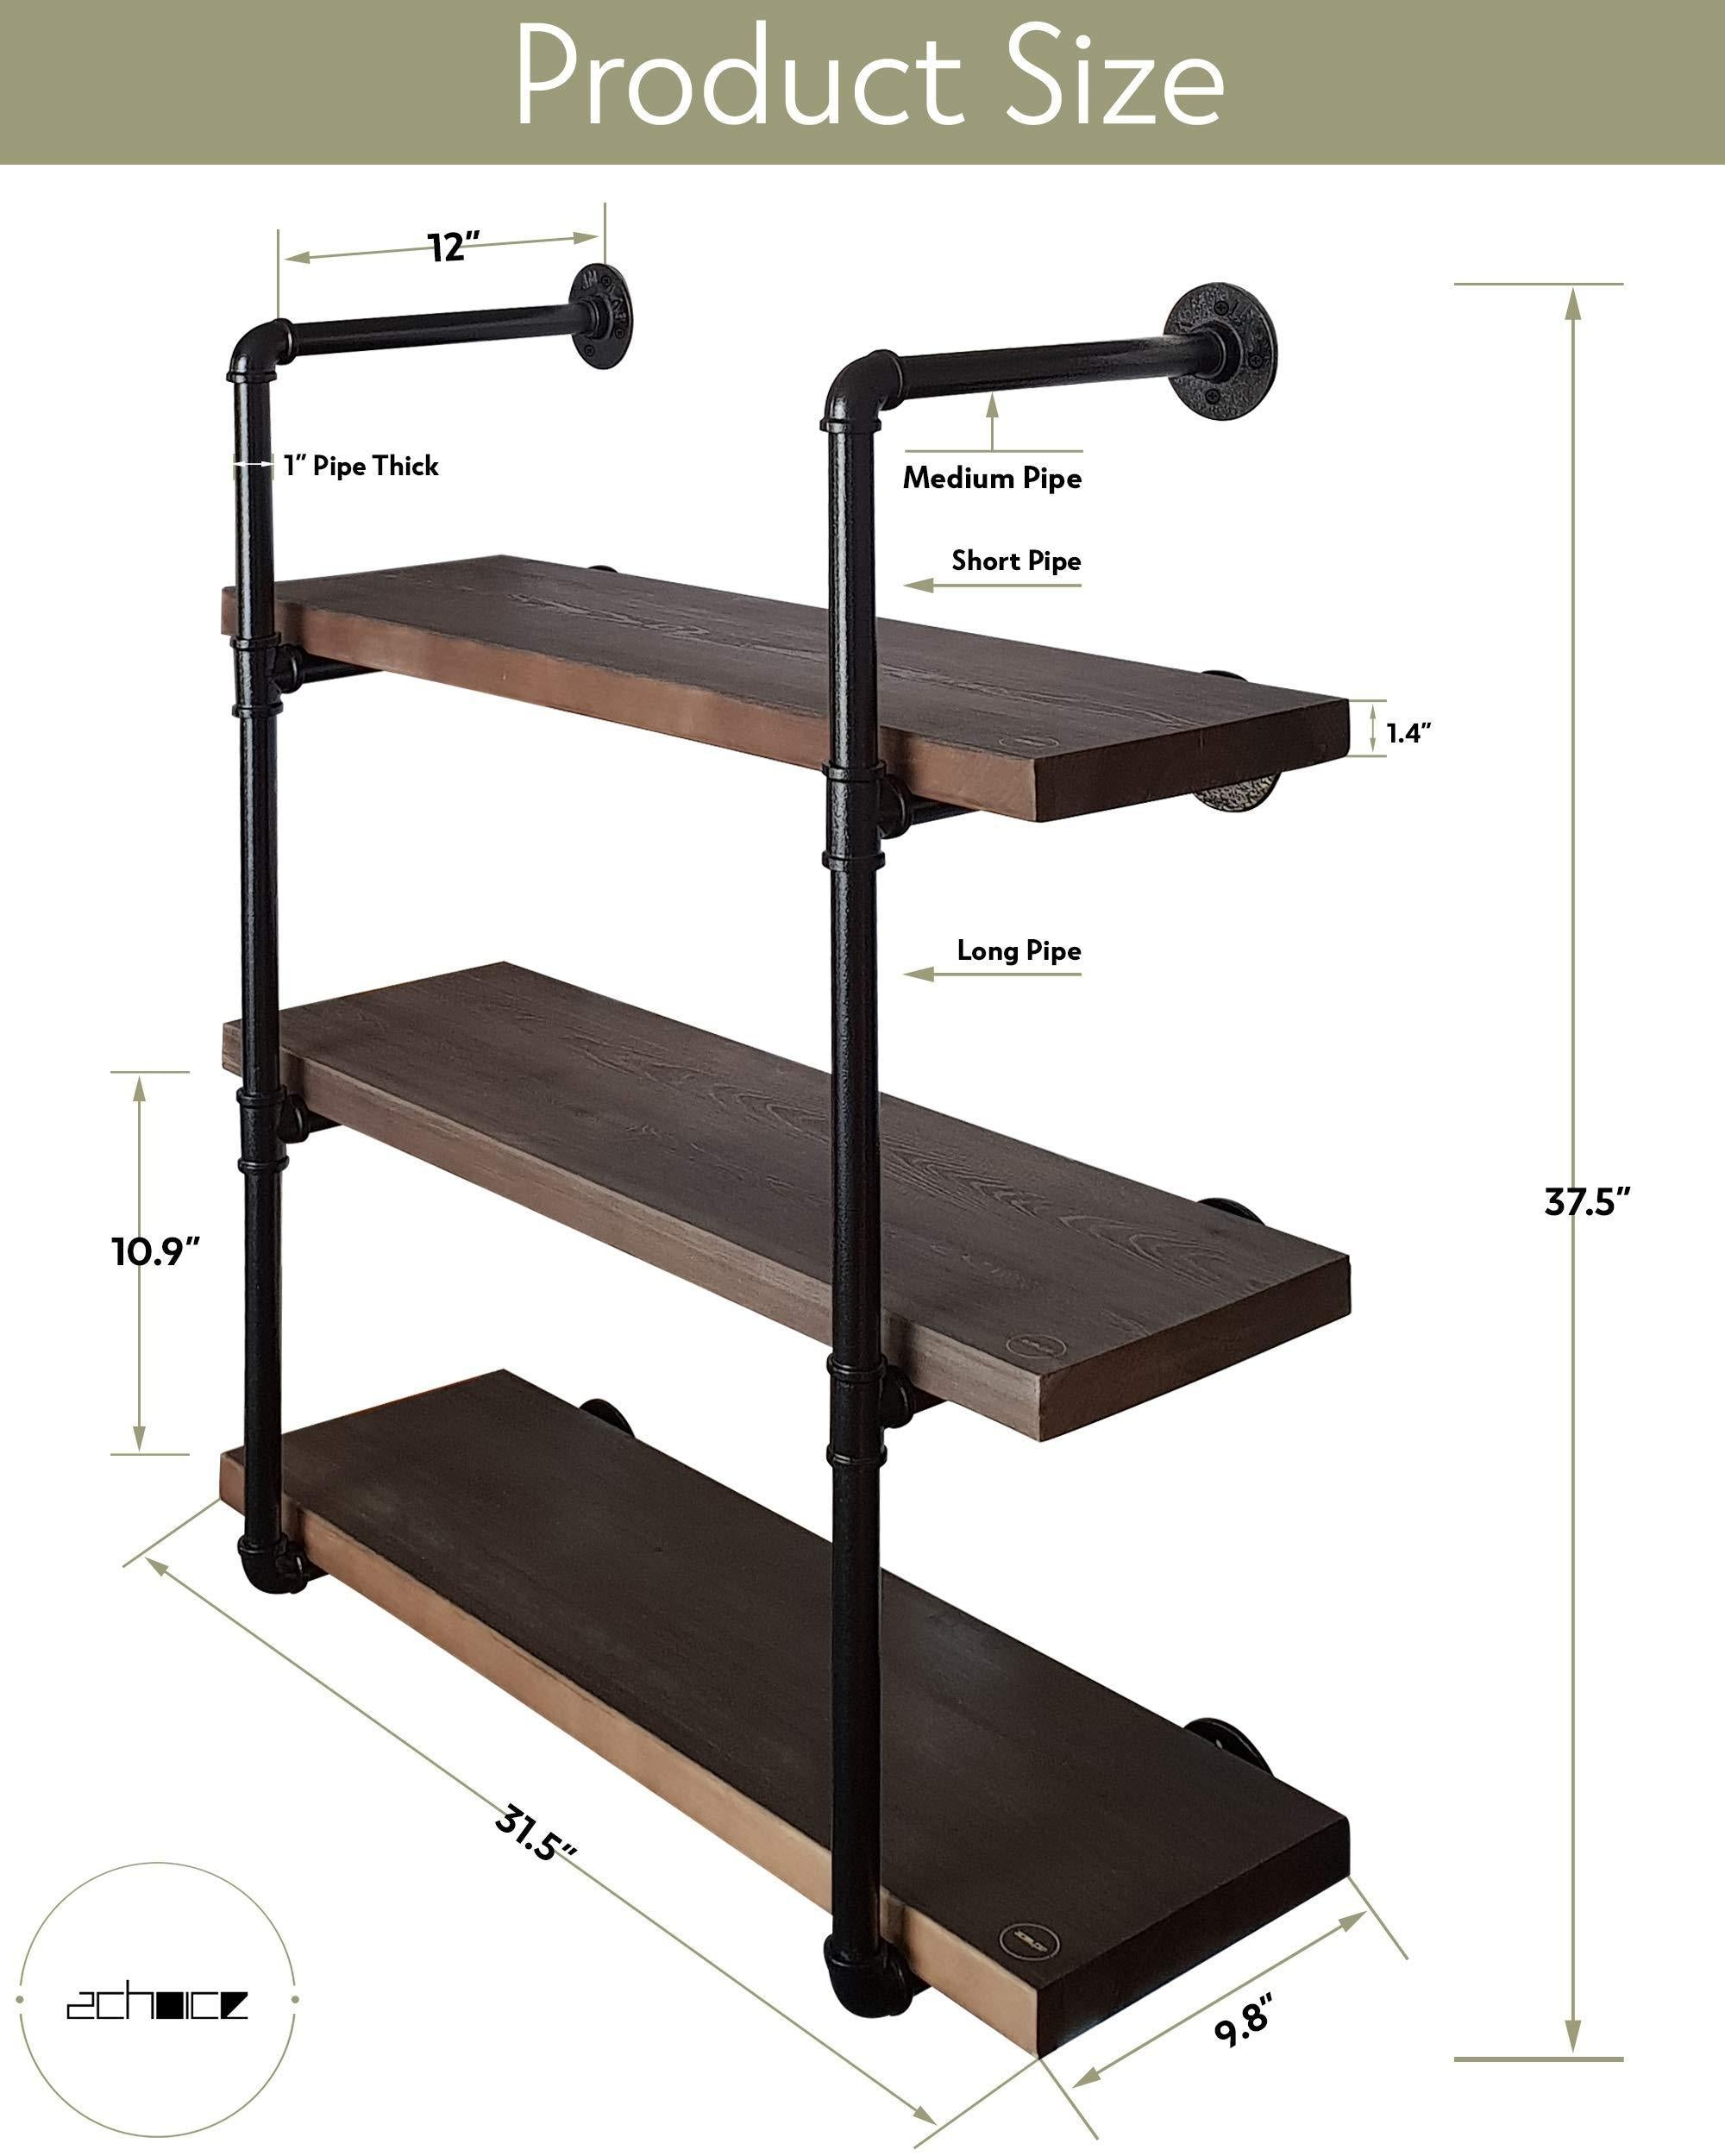 New 2choice industrial pipe shelving rustic shelves solid canadian wood vintage sleek pipe shelves for floating bookshelf kitchen living room versatile home decor wall mounted storage 3 tier